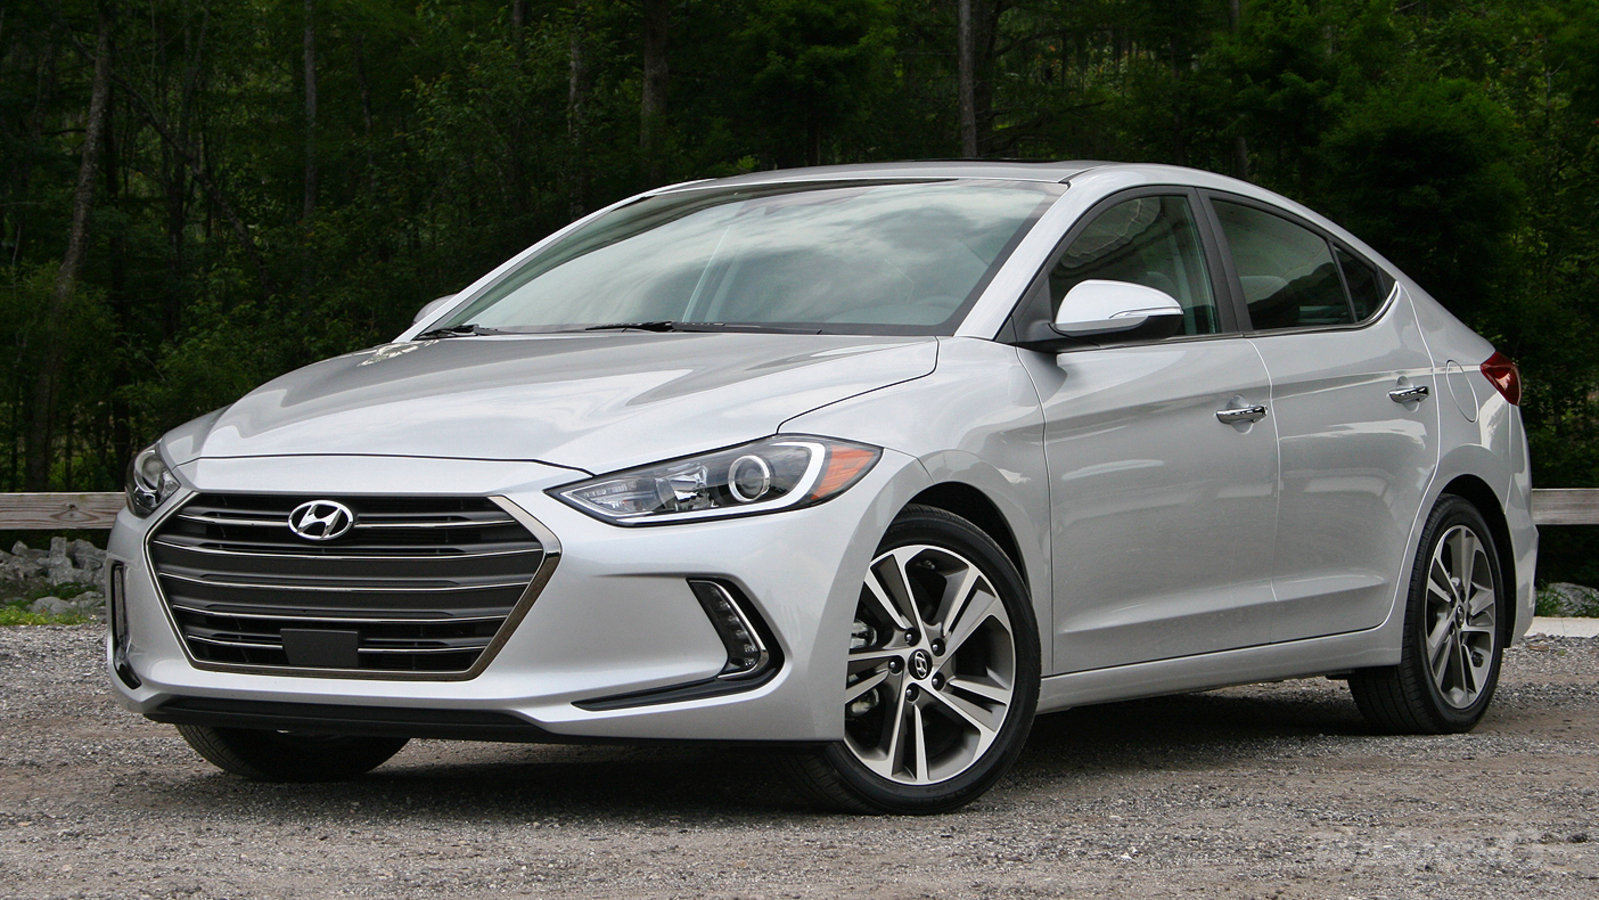 2017 hyundai elantra limited driven review gallery top speed. Black Bedroom Furniture Sets. Home Design Ideas